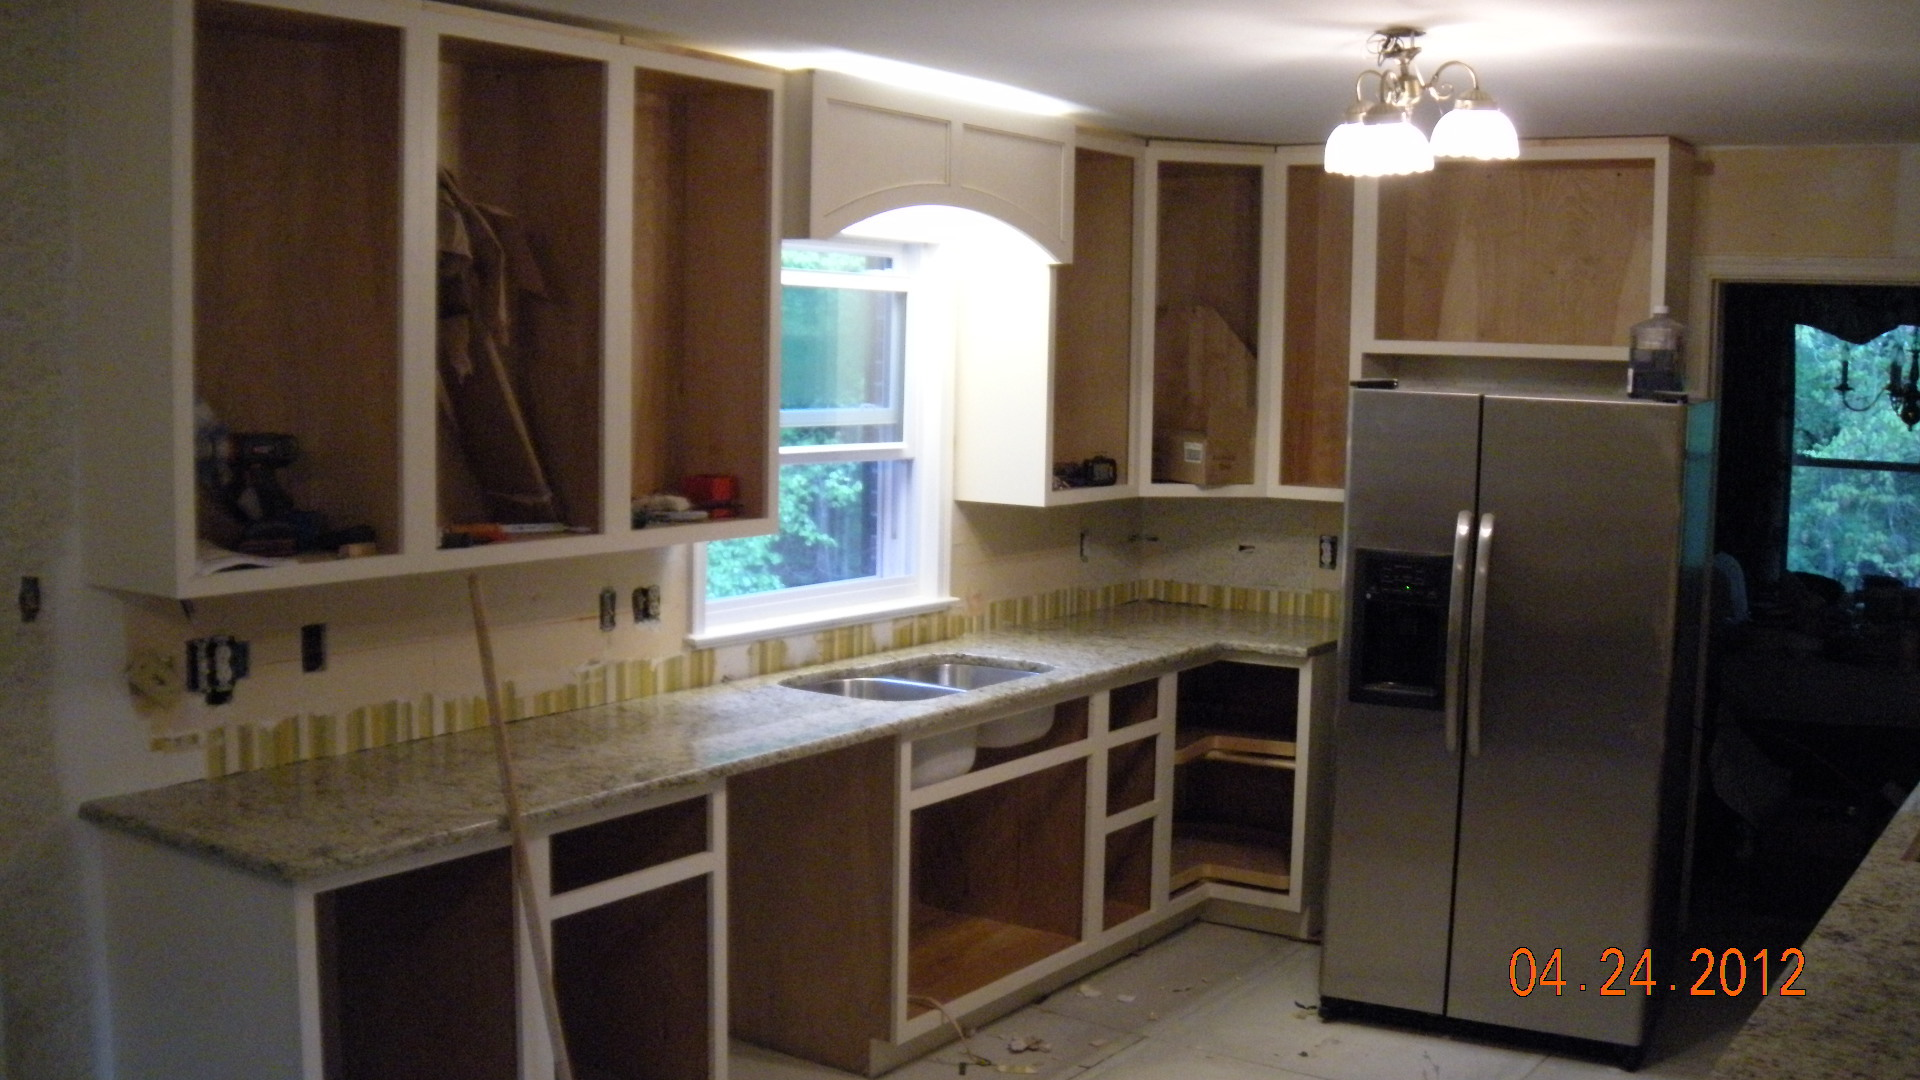 Gkitchen during building phase